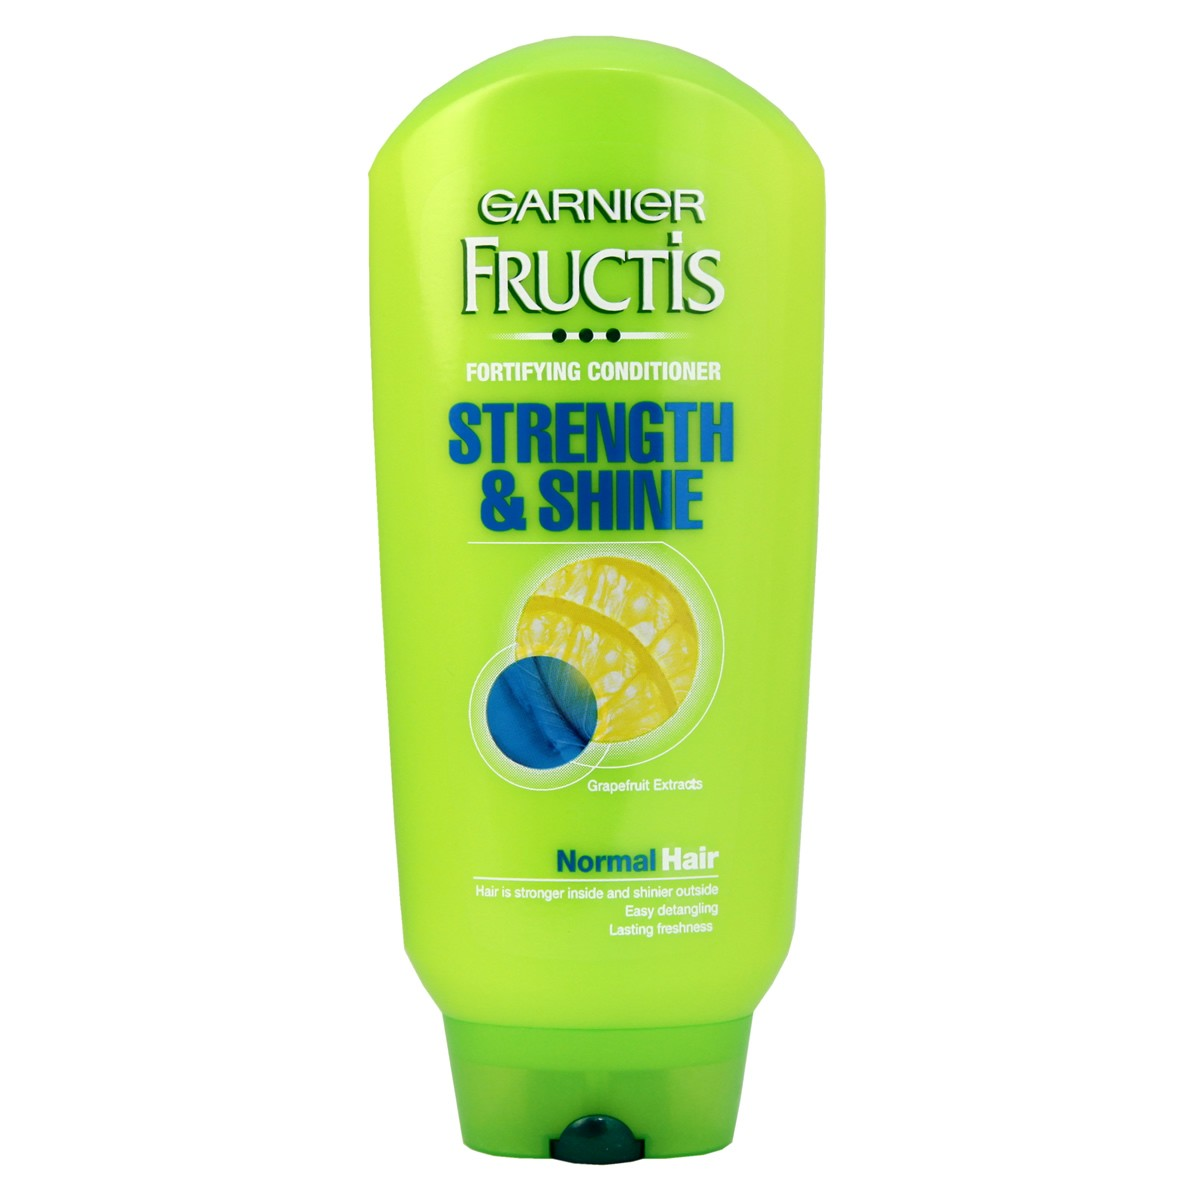 Garnier Fructis Strength & Shine Conditioner